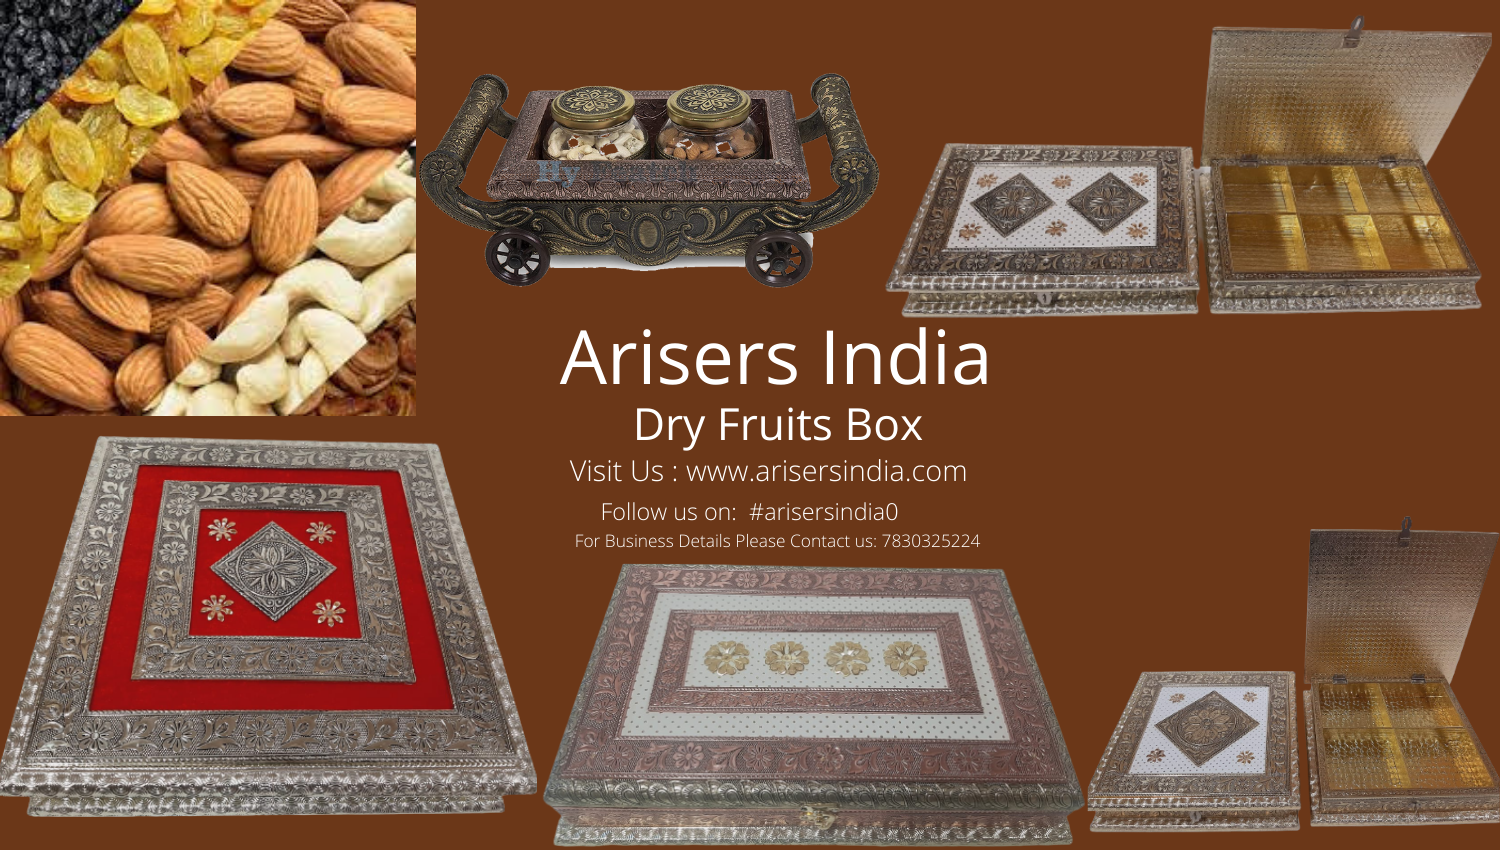 arisers-india-dry-fruits-box-gift-items